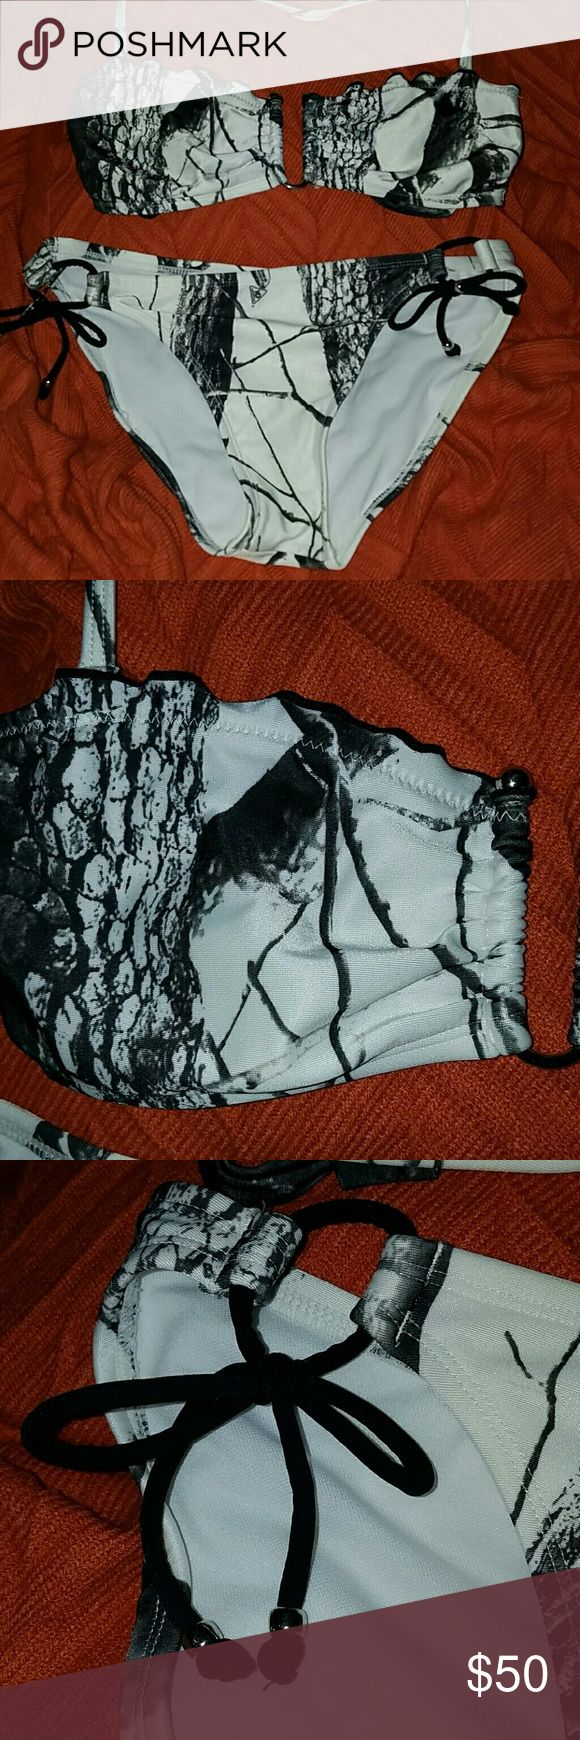 Realtree White Camo Swimsuit Realtree Hardwoods Snow Camo Bikini- Only worn once! Top is a Bandeau with a removable halter strap 'U' bar front, tie back Bottoms tie on sides, with silver beads Swim Bikinis